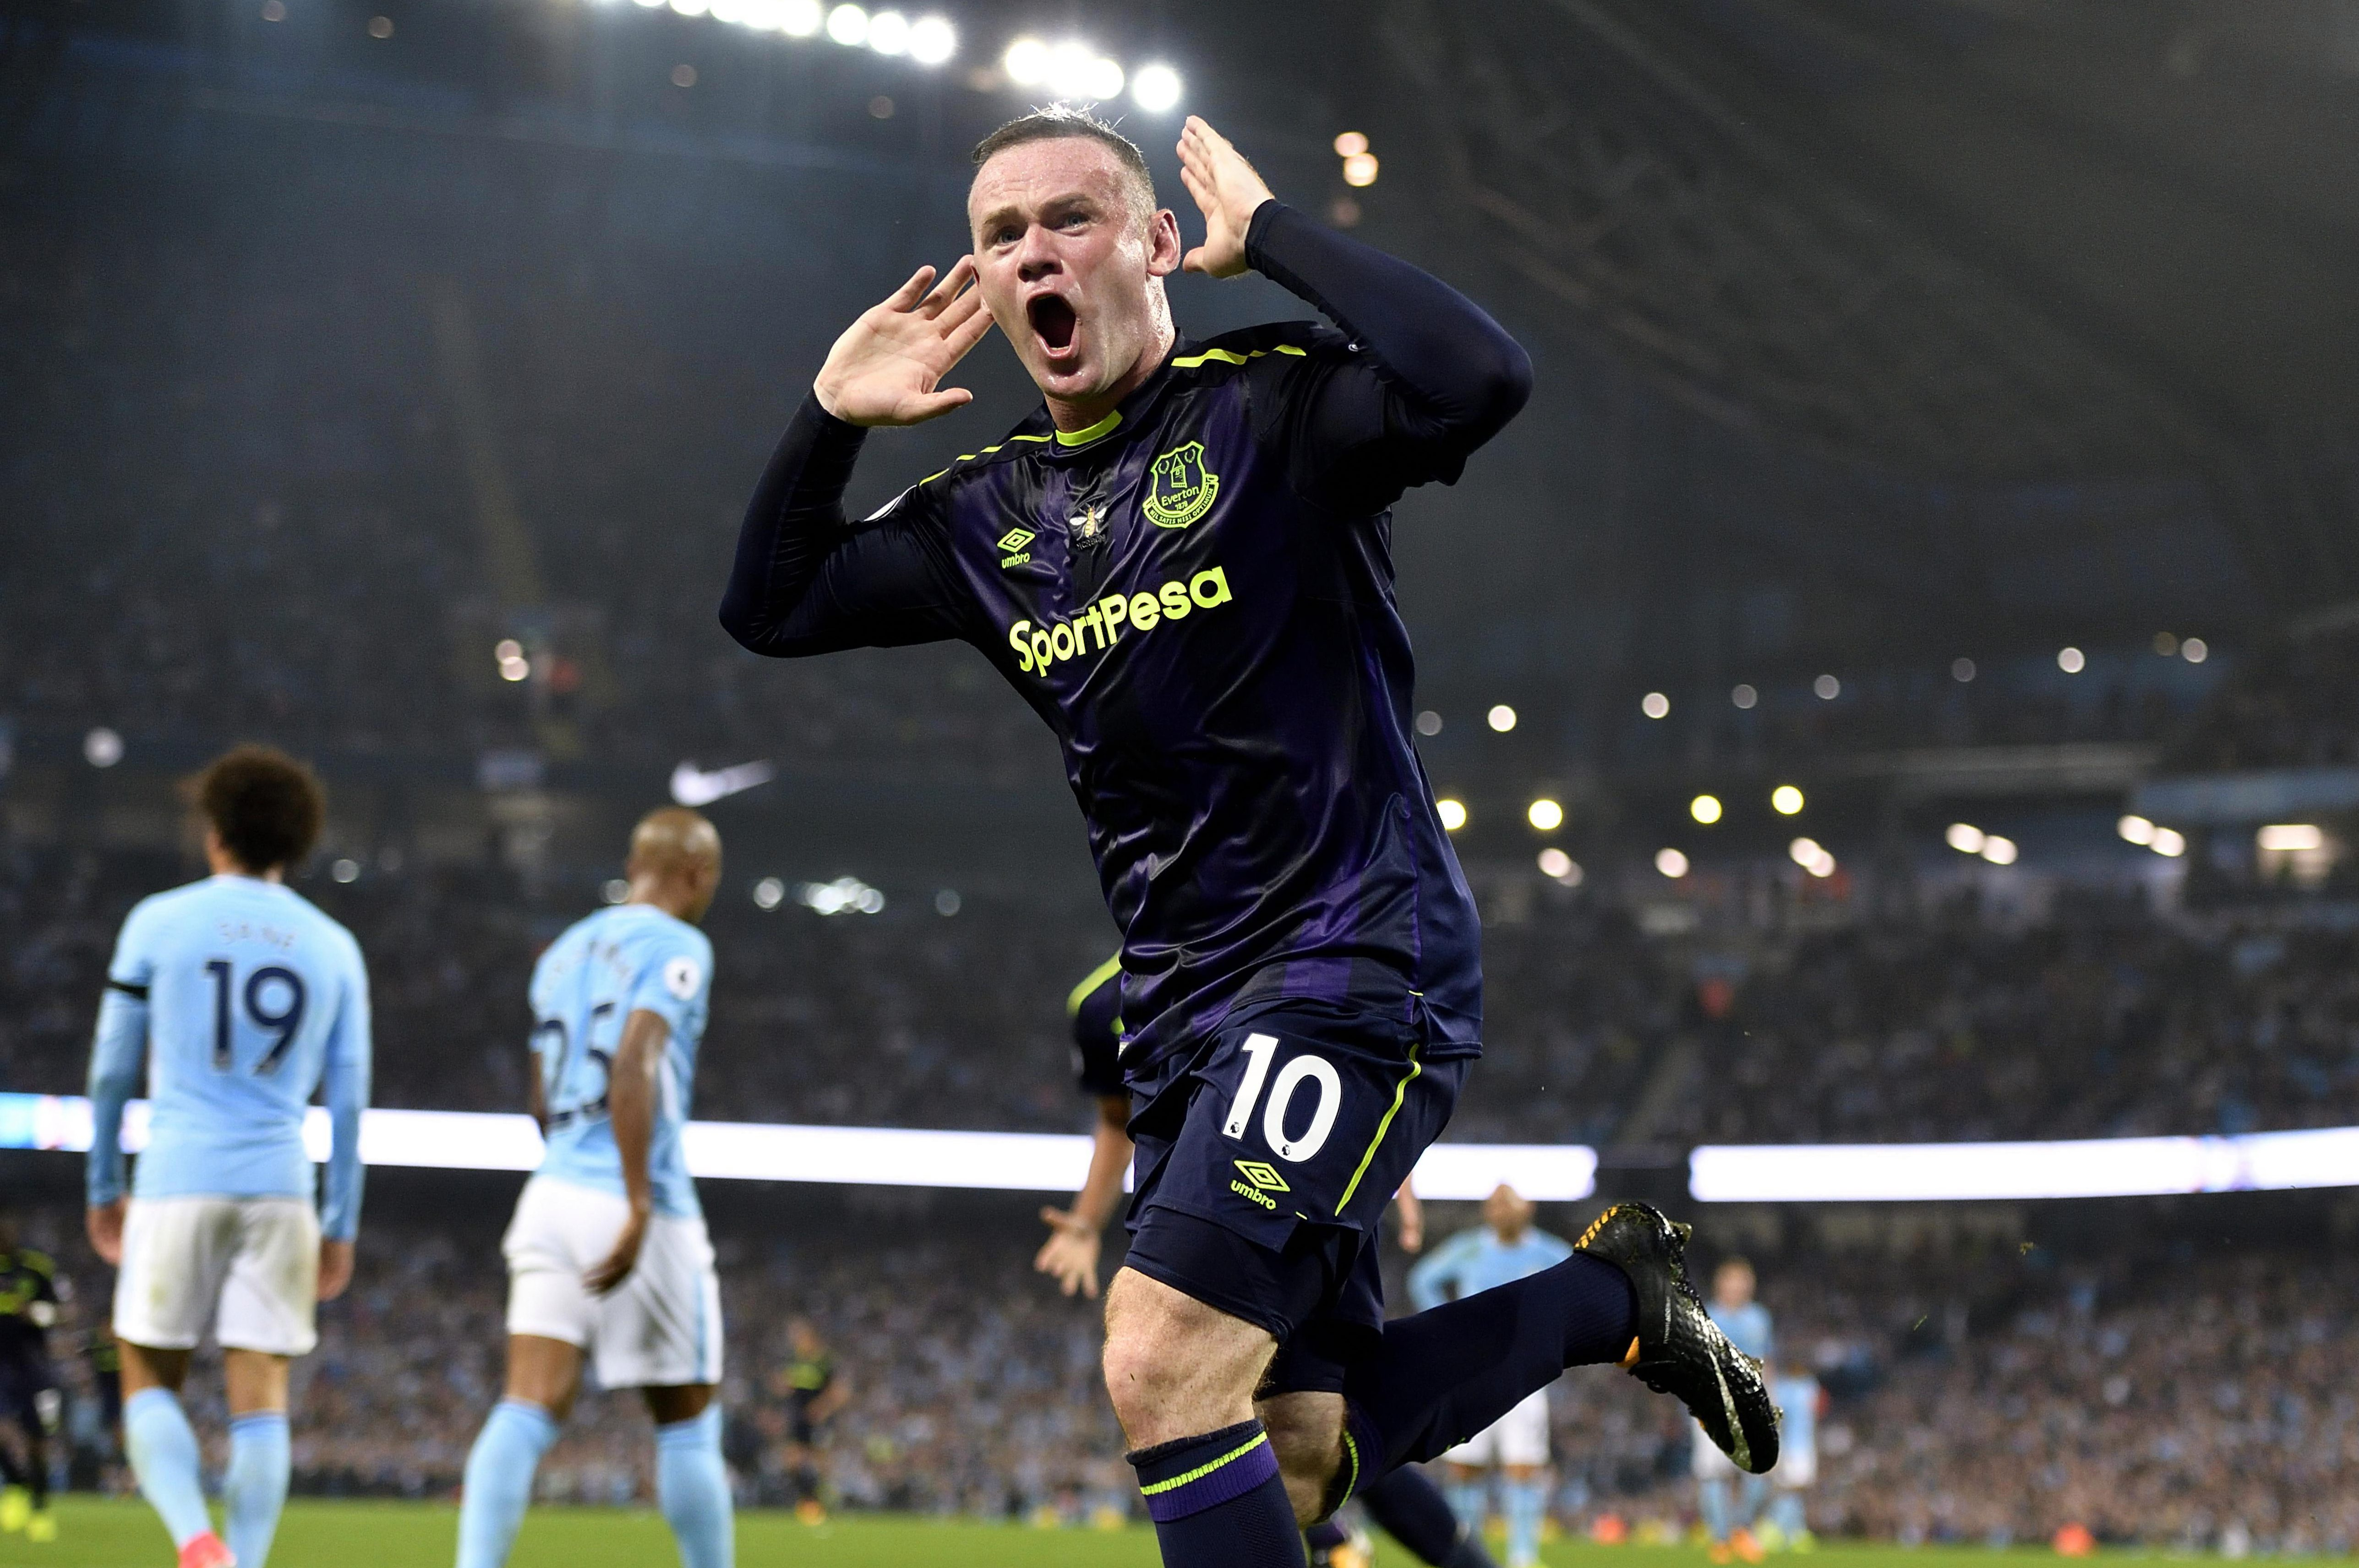 Rooney received a typically hostile reception at the Etihad